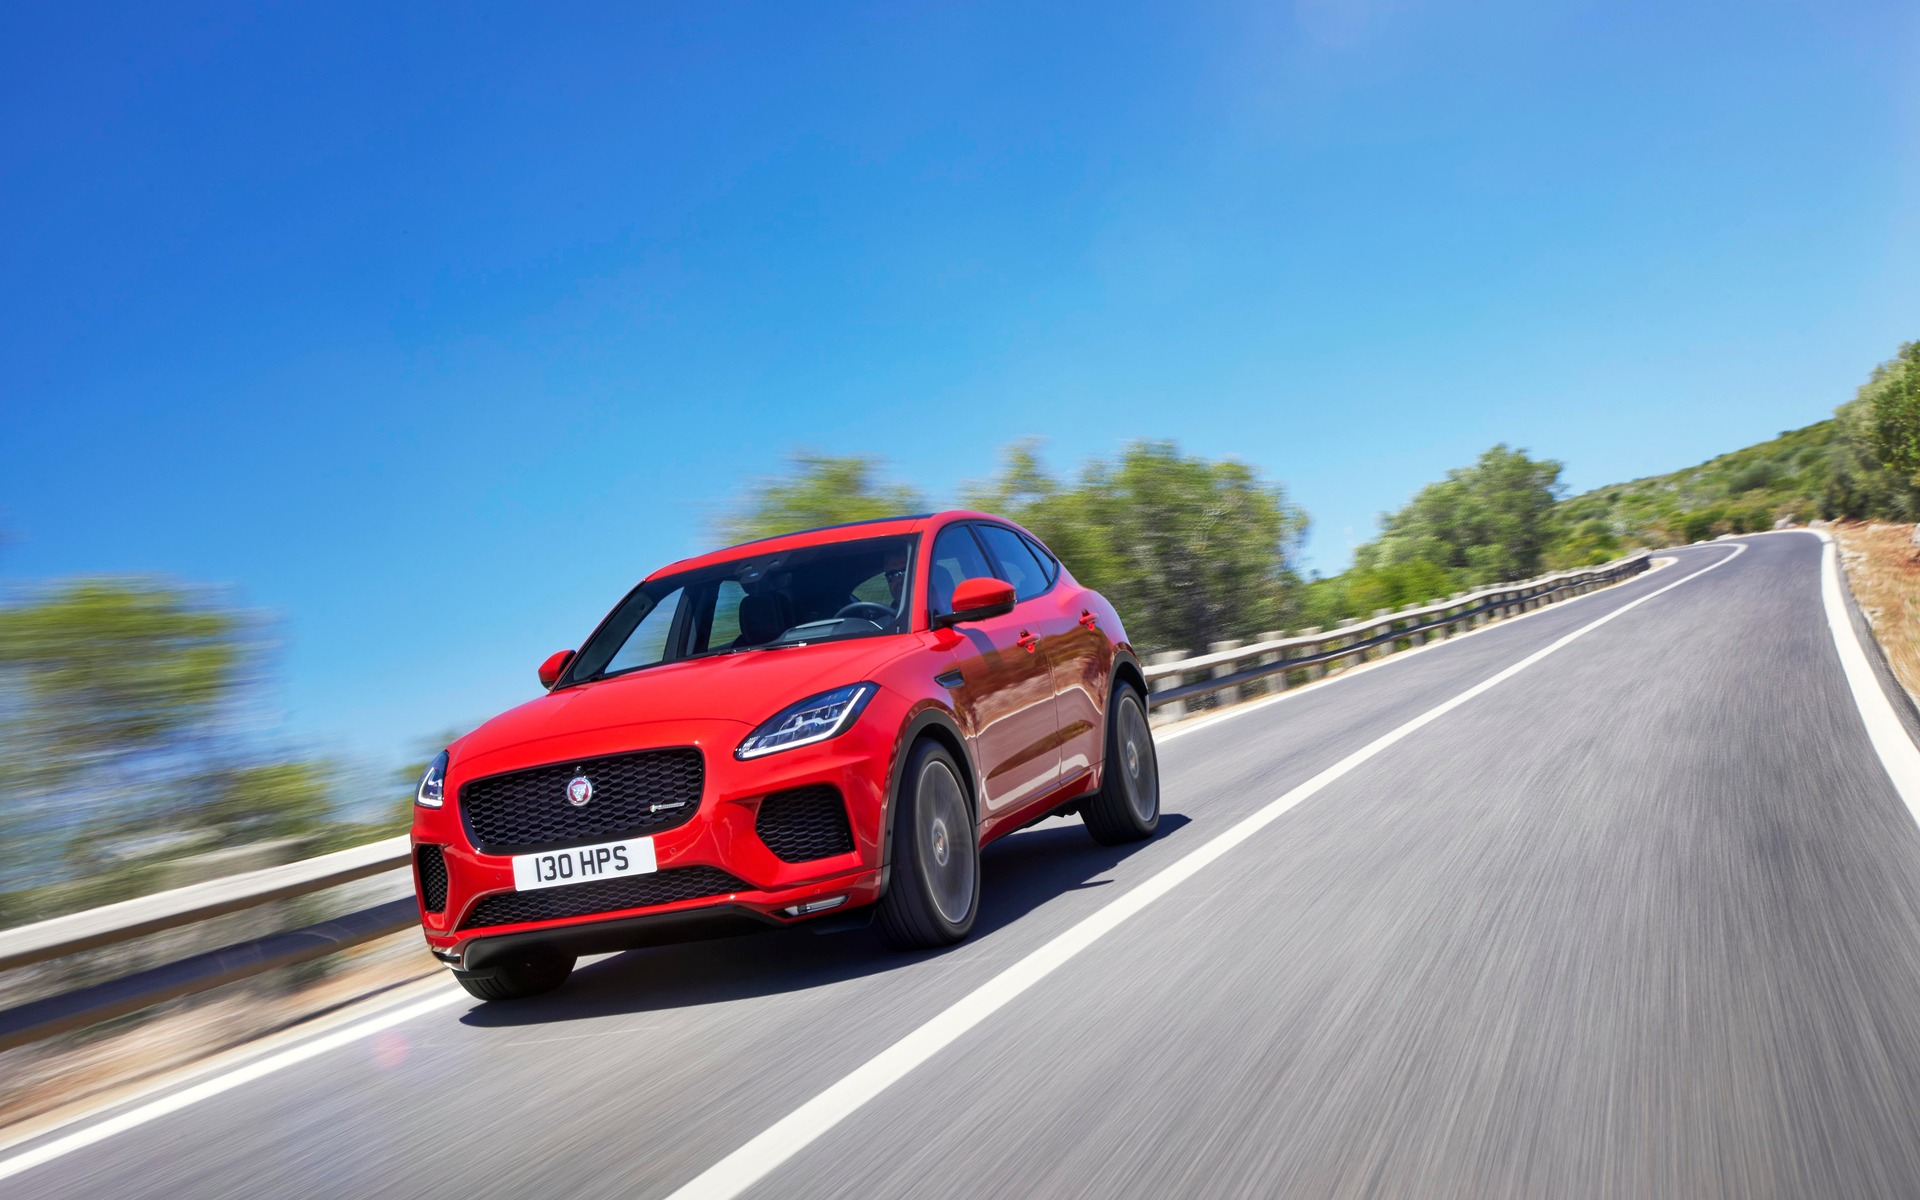 Jaguar Land Rover >> Canadian Premiere: 2018 Jaguar E-PACE Brings Style and Power to the Small SUV Segment - 4/13